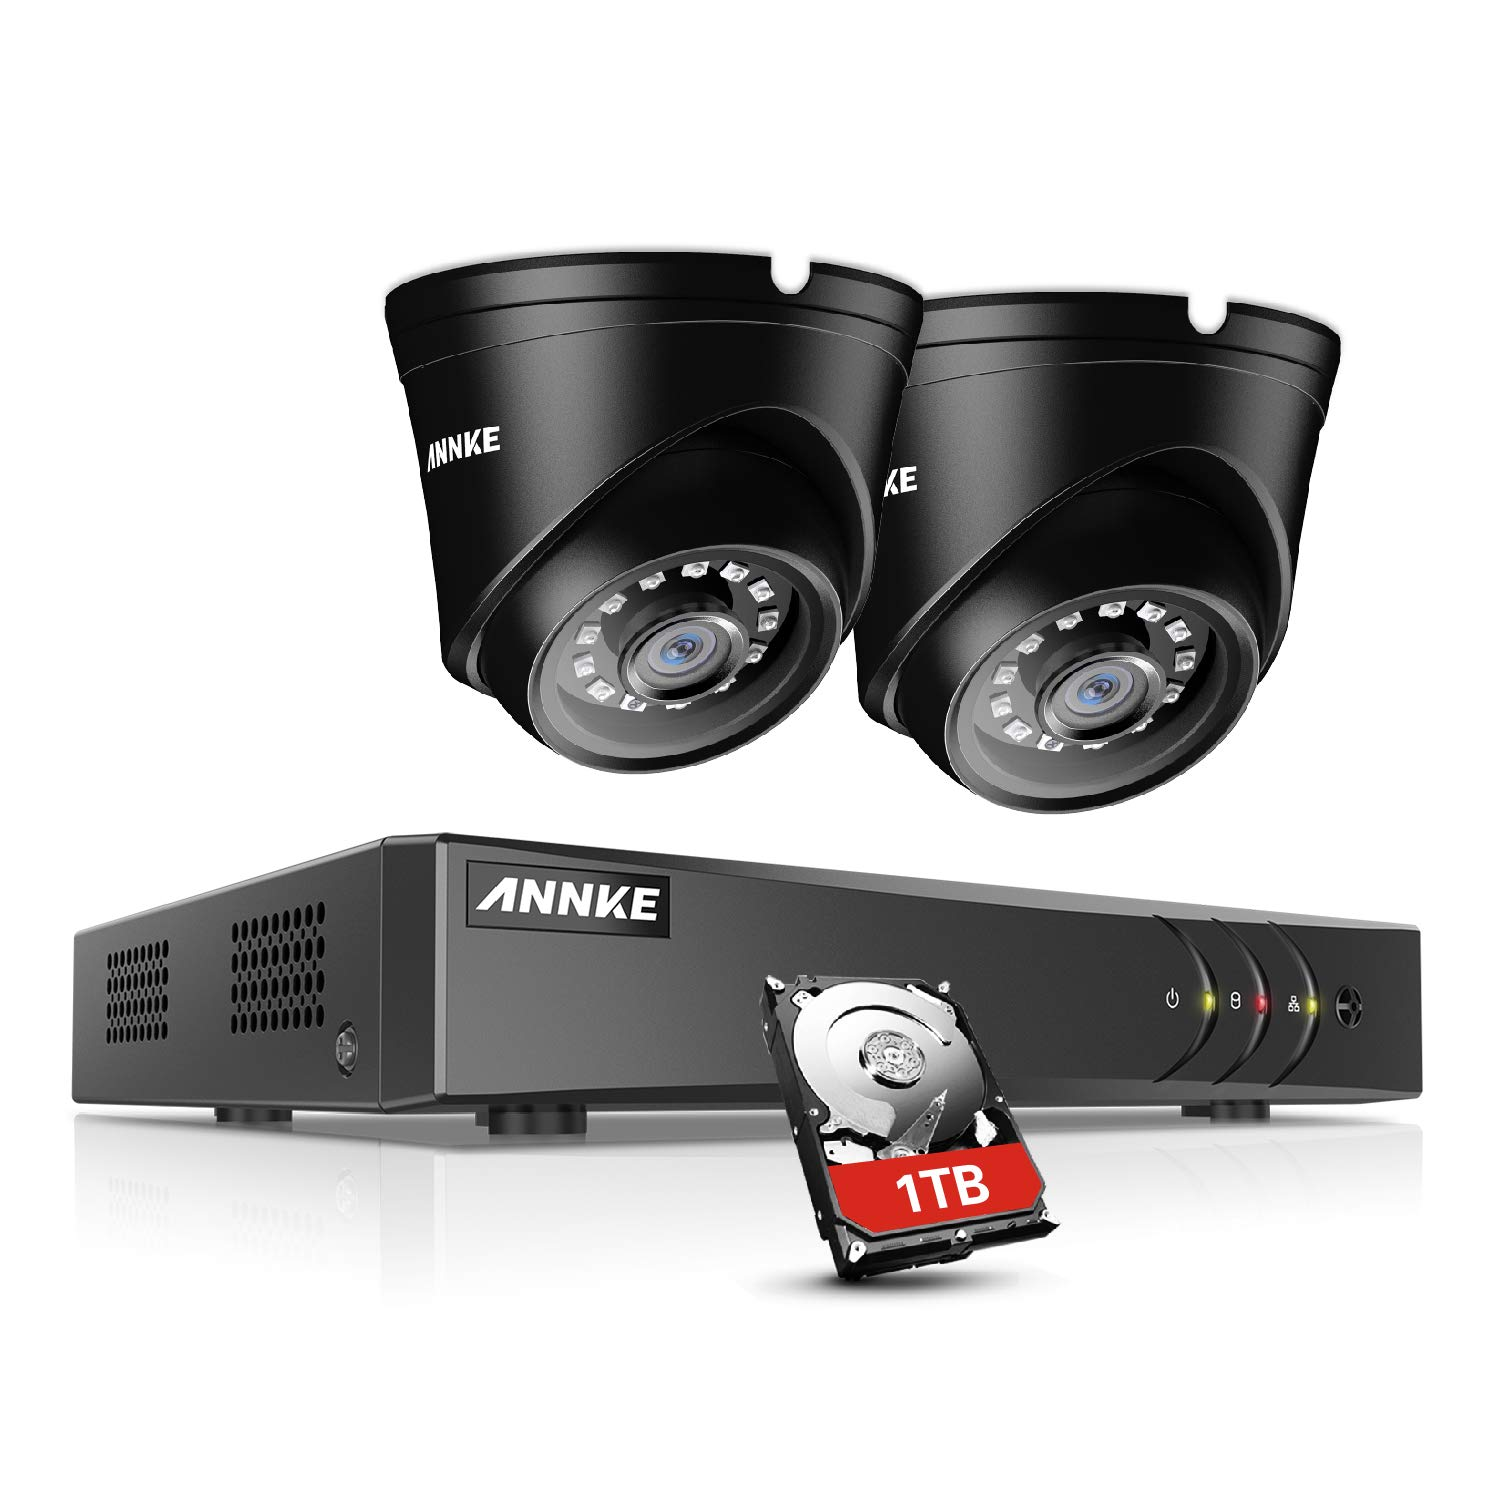 ANNKE 1080P Realtime Home Security System 4CH CCTV 1080P Lite DVR with 1TB Surveillance Hard Disk Drive and (2) 1080P Weatherproof Bullet Cameras, P2P Cloud Remote Viewing, Motion Detection